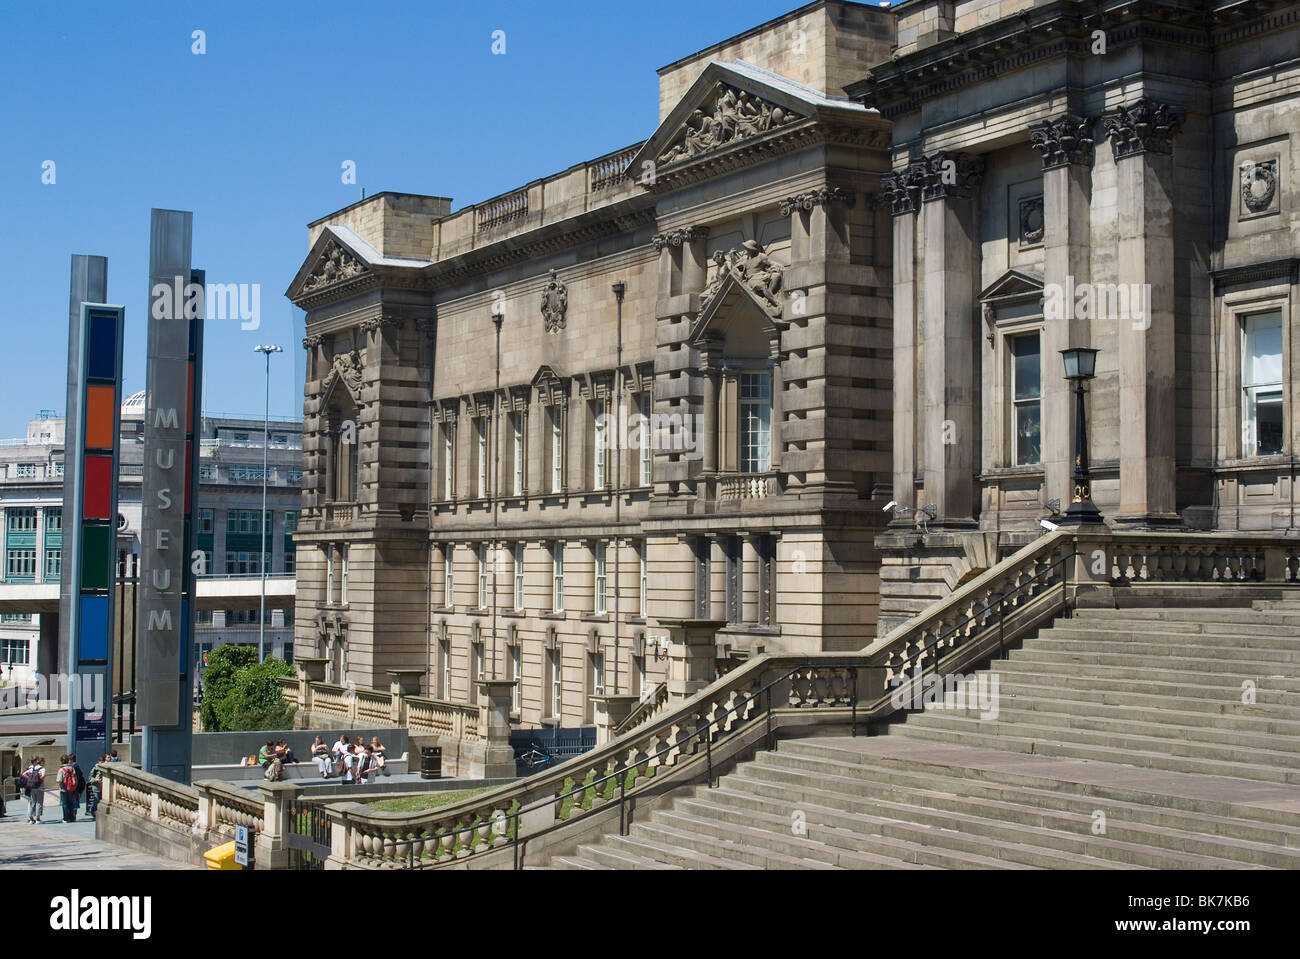 The World Museum, part of Liverpool's museum complex, Liverpool, Merseyside, England, United Kingdom, Europe Stock Photo